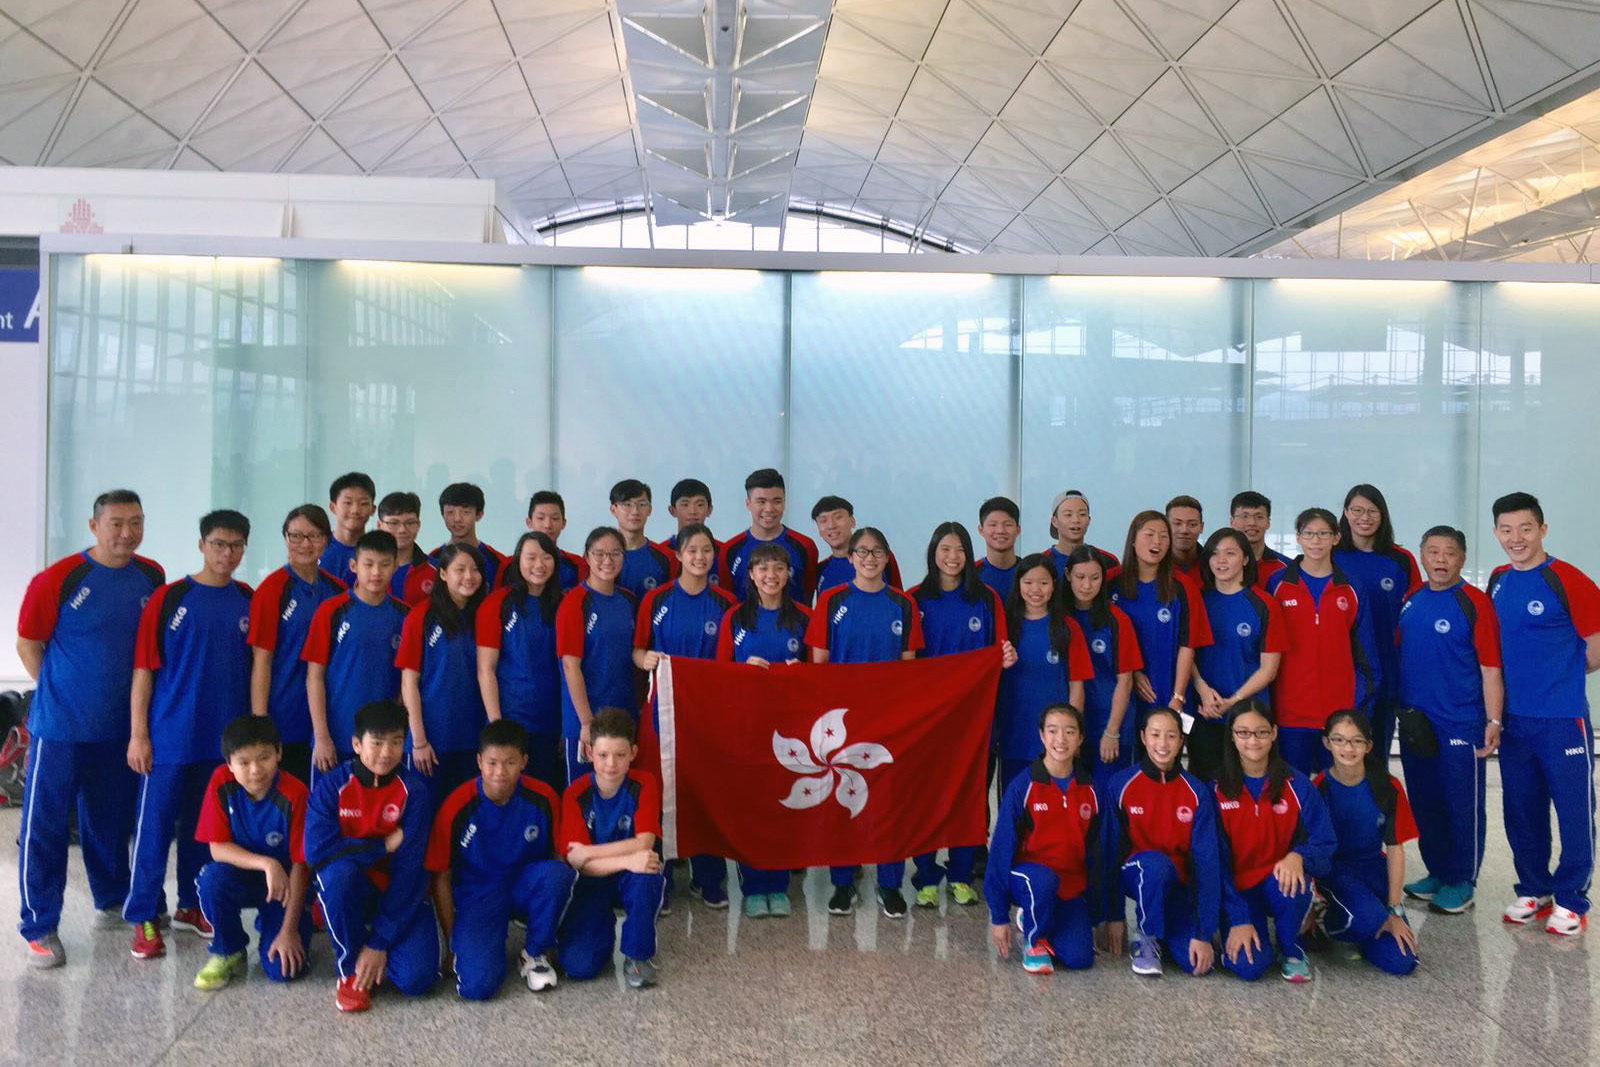 Win Tin Swimming Club - Taiwan Age Group Swimming Championships 1